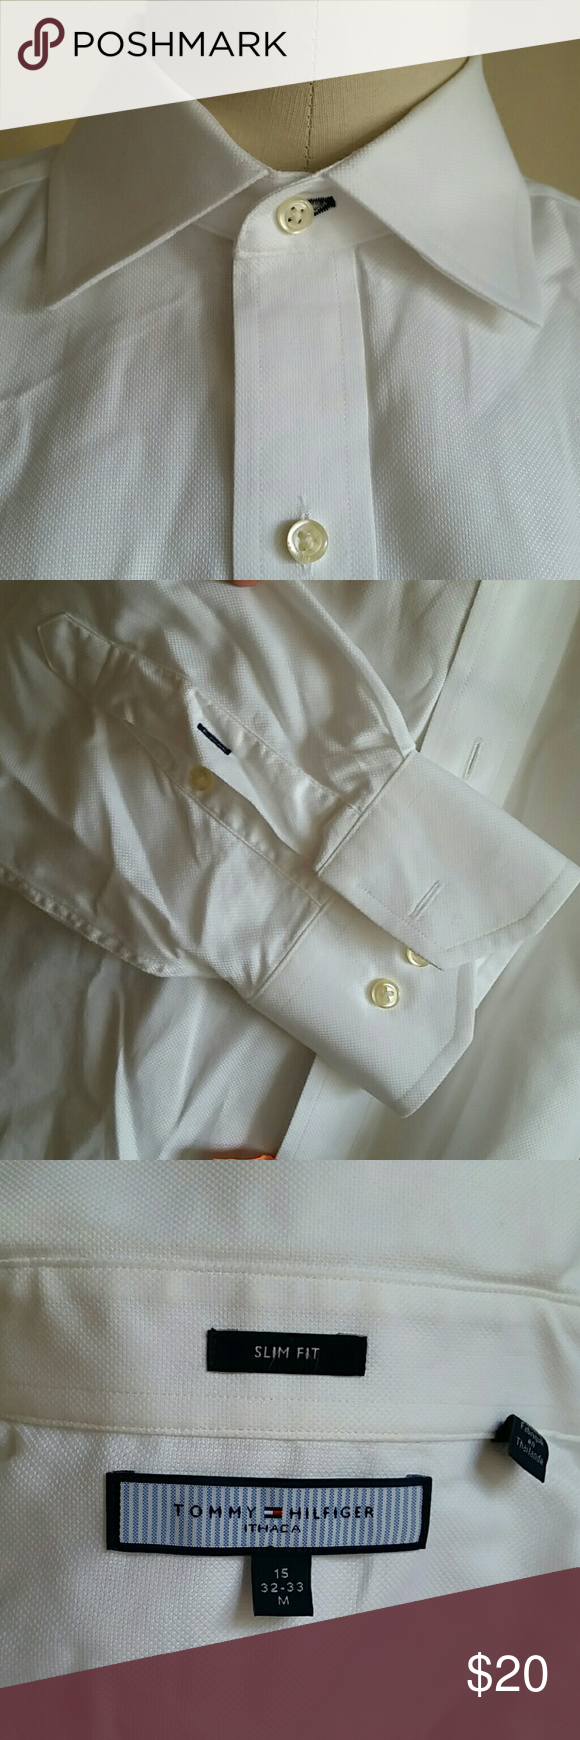 Men's Hilfiger Size 15, 32-33 Slim Almost like new, no wear or stains, slim fit Tommy Hilfiger Shirts Dress Shirts